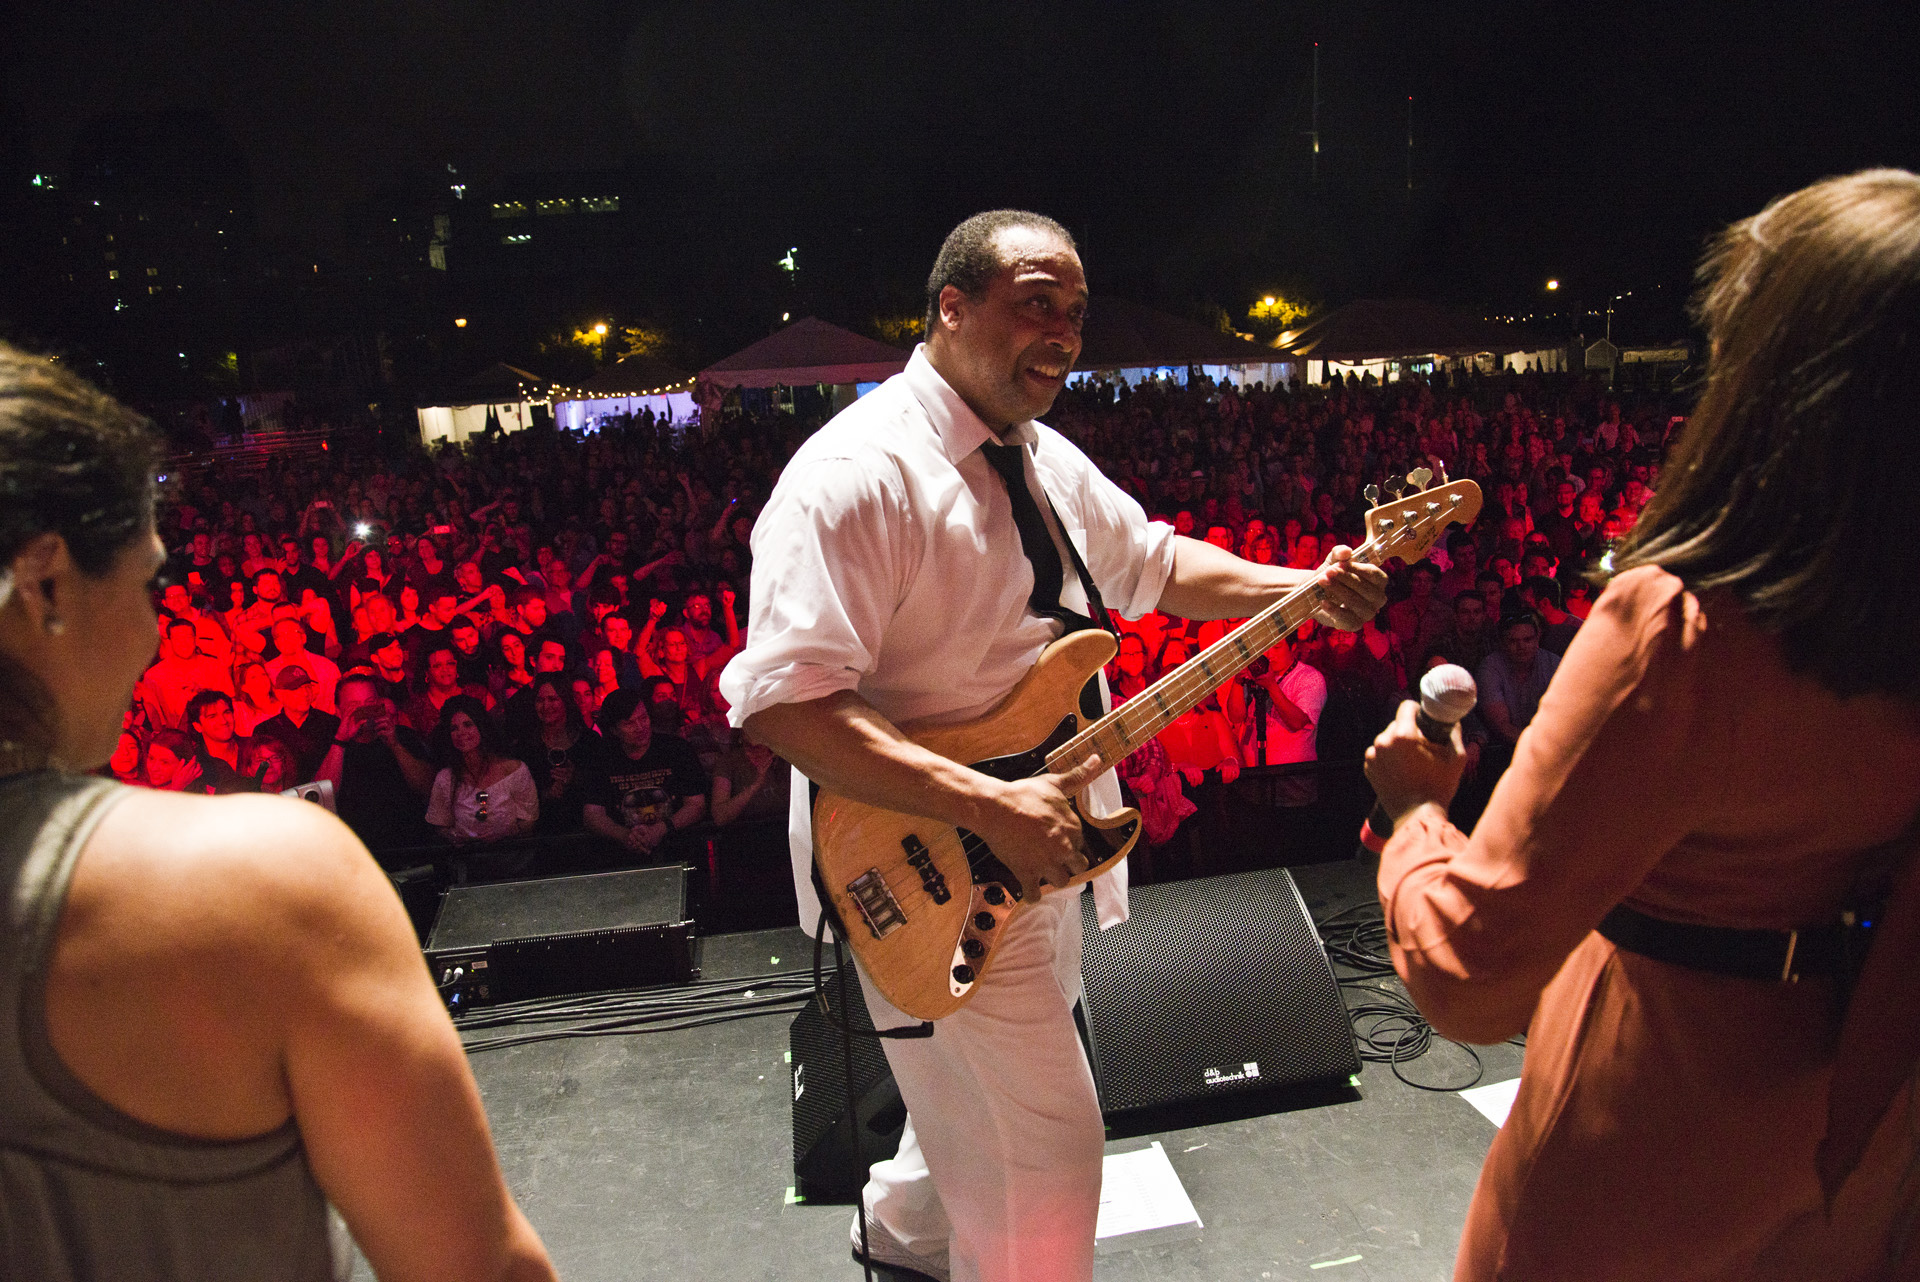 On Stage with the Nile Rogers band, just as the Disco Dance Party Broke out